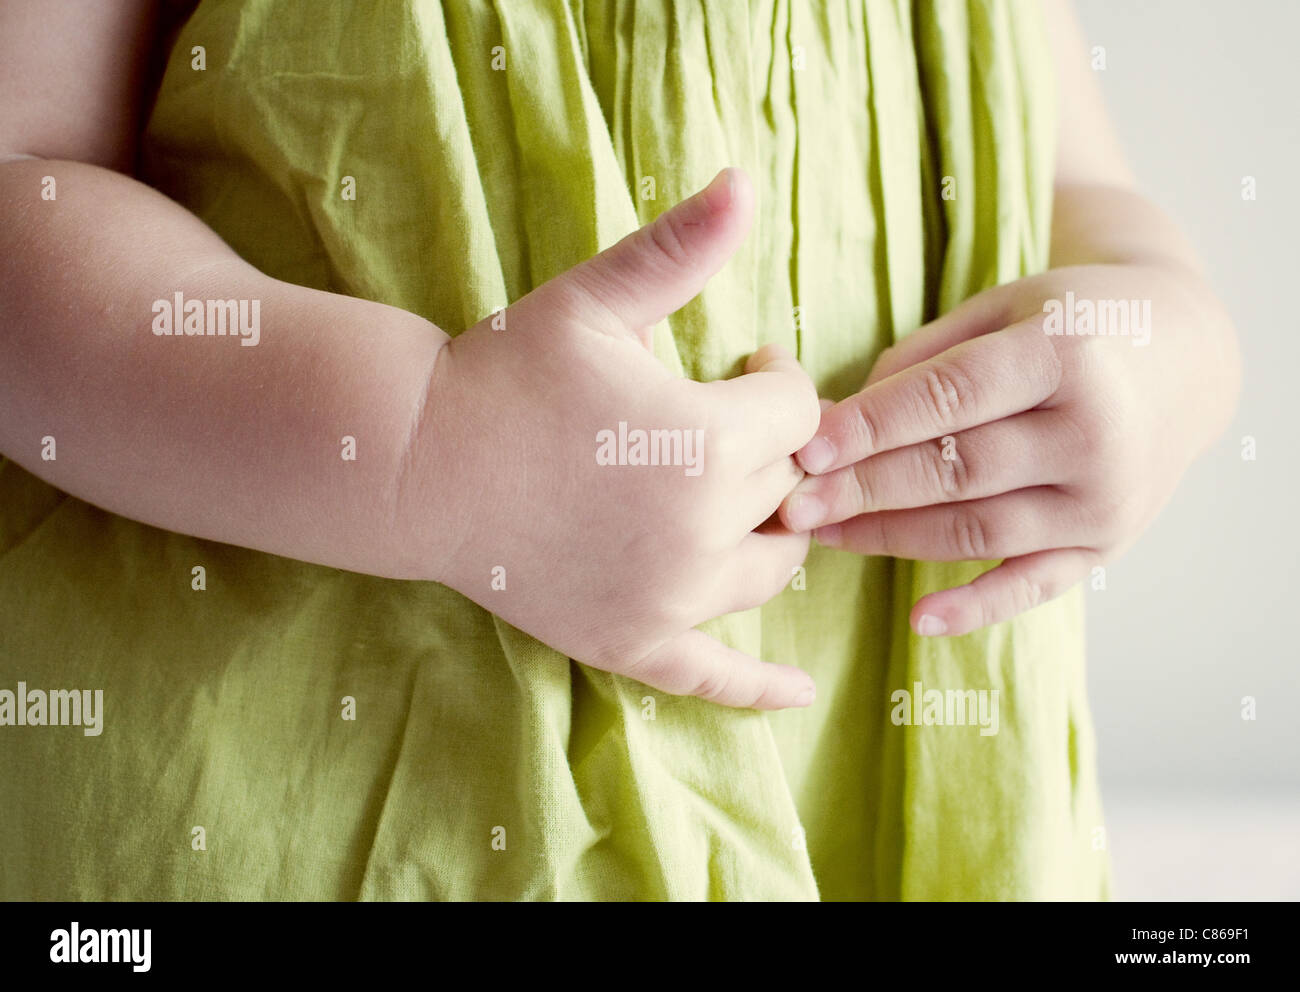 Child putting hands on stomach - Stock Image